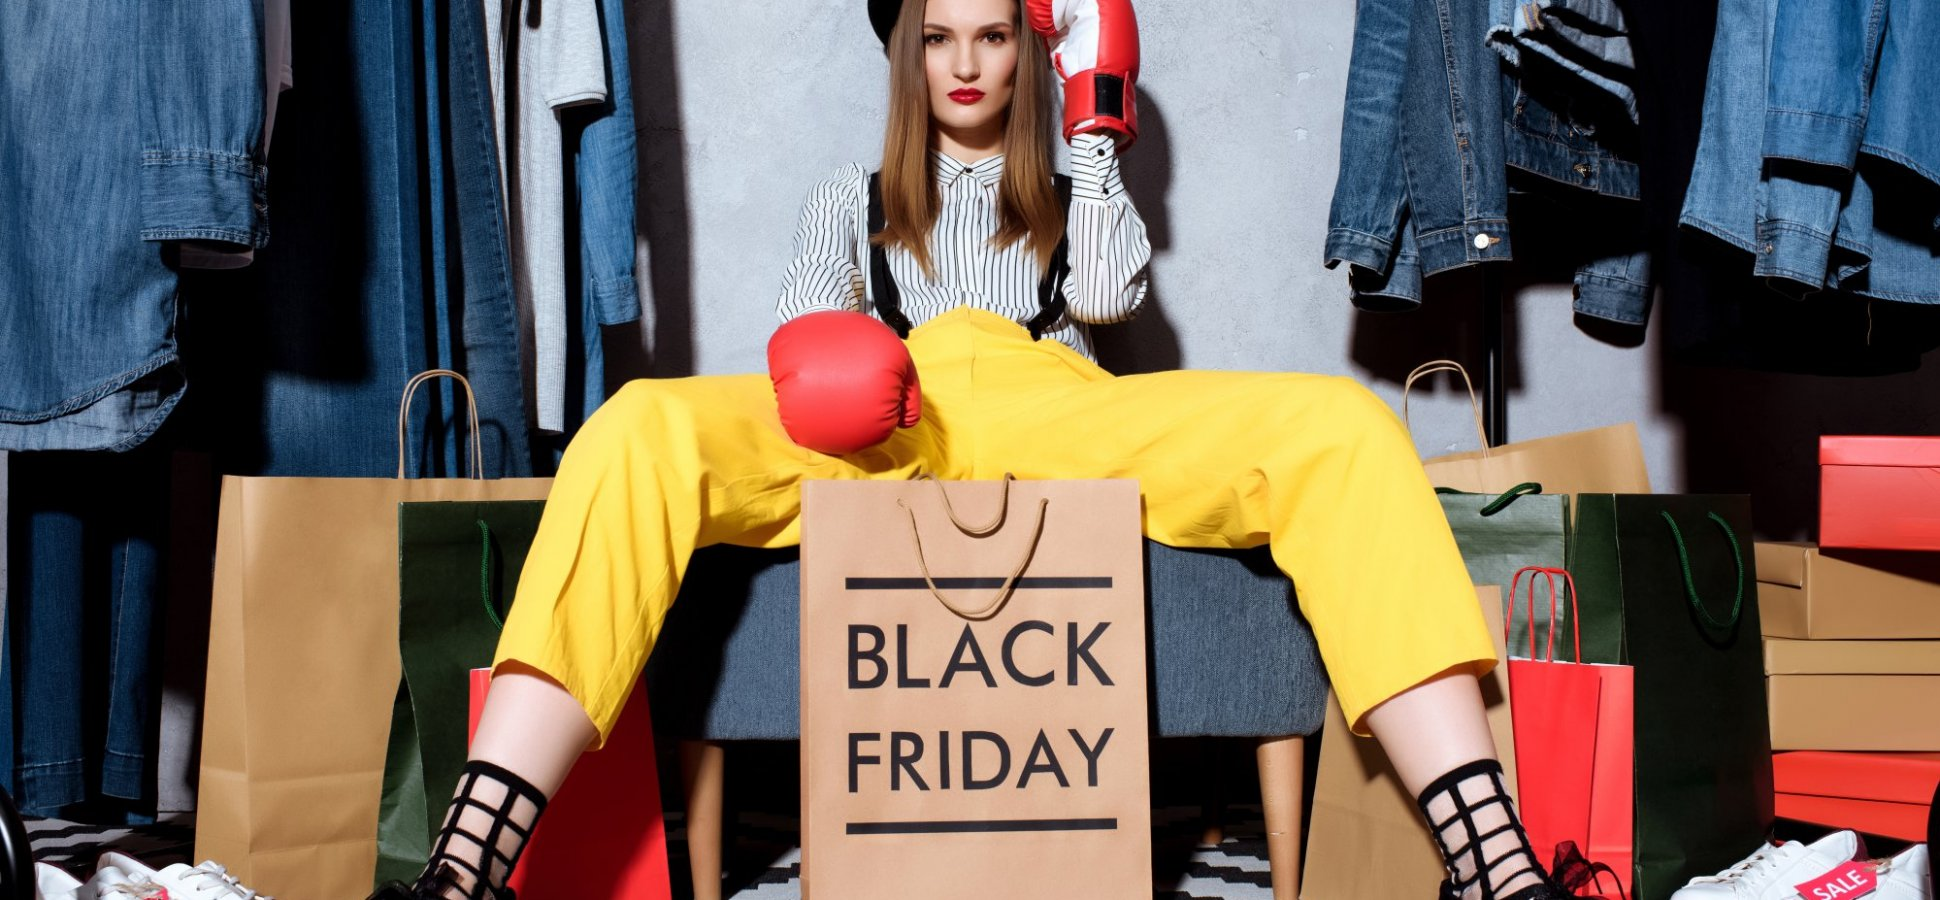 5 Business Lessons You Can Learn From Black Friday Even If You Don't Sell to Consumers